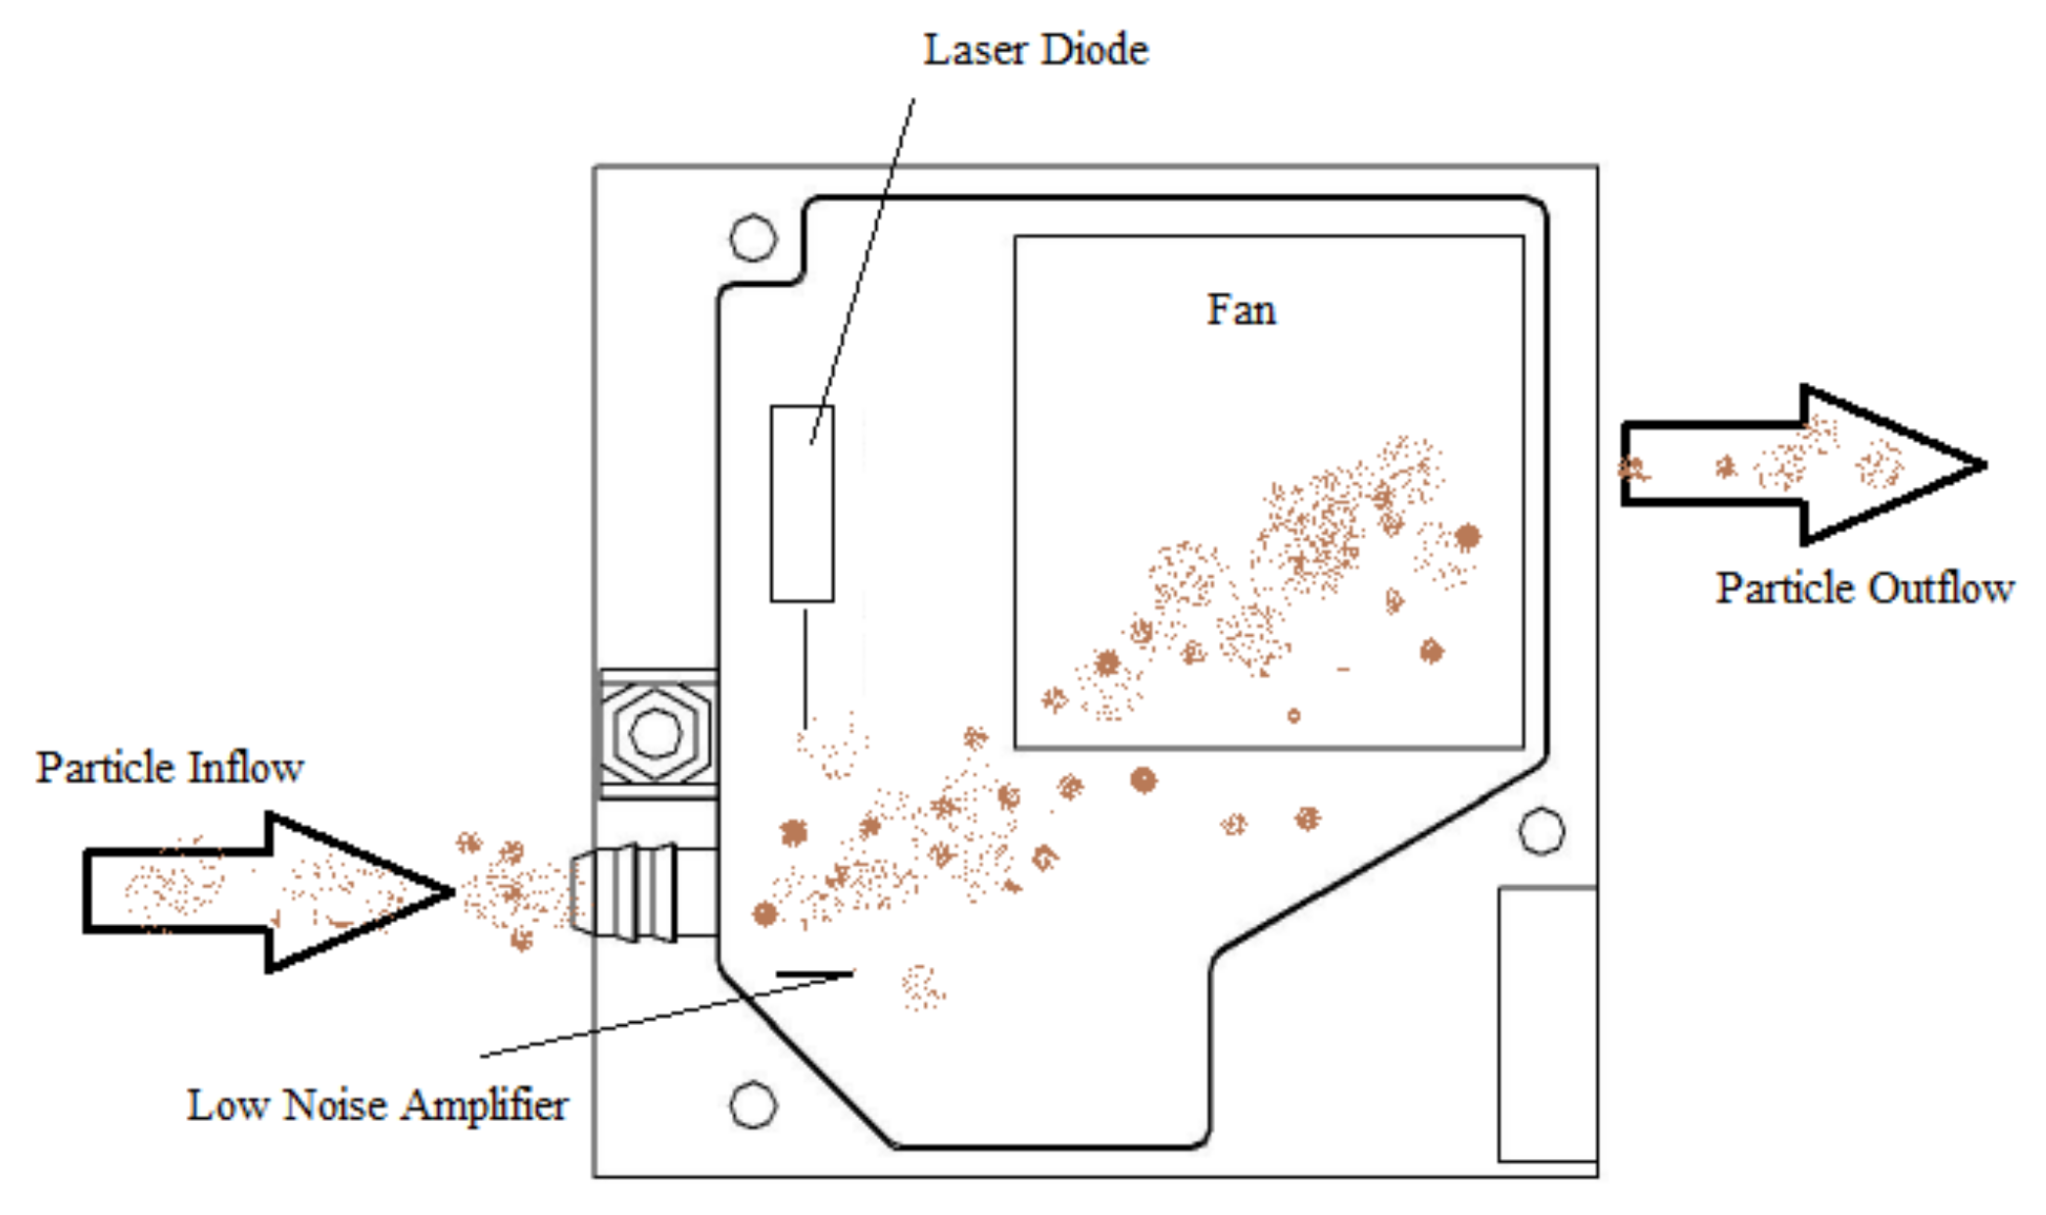 Sensors Free Full Text Development And On Field Testing Of Low Heat Pump For Laser Diodes Stabilization Circuit Wiring Diagrams 18 01056 G002